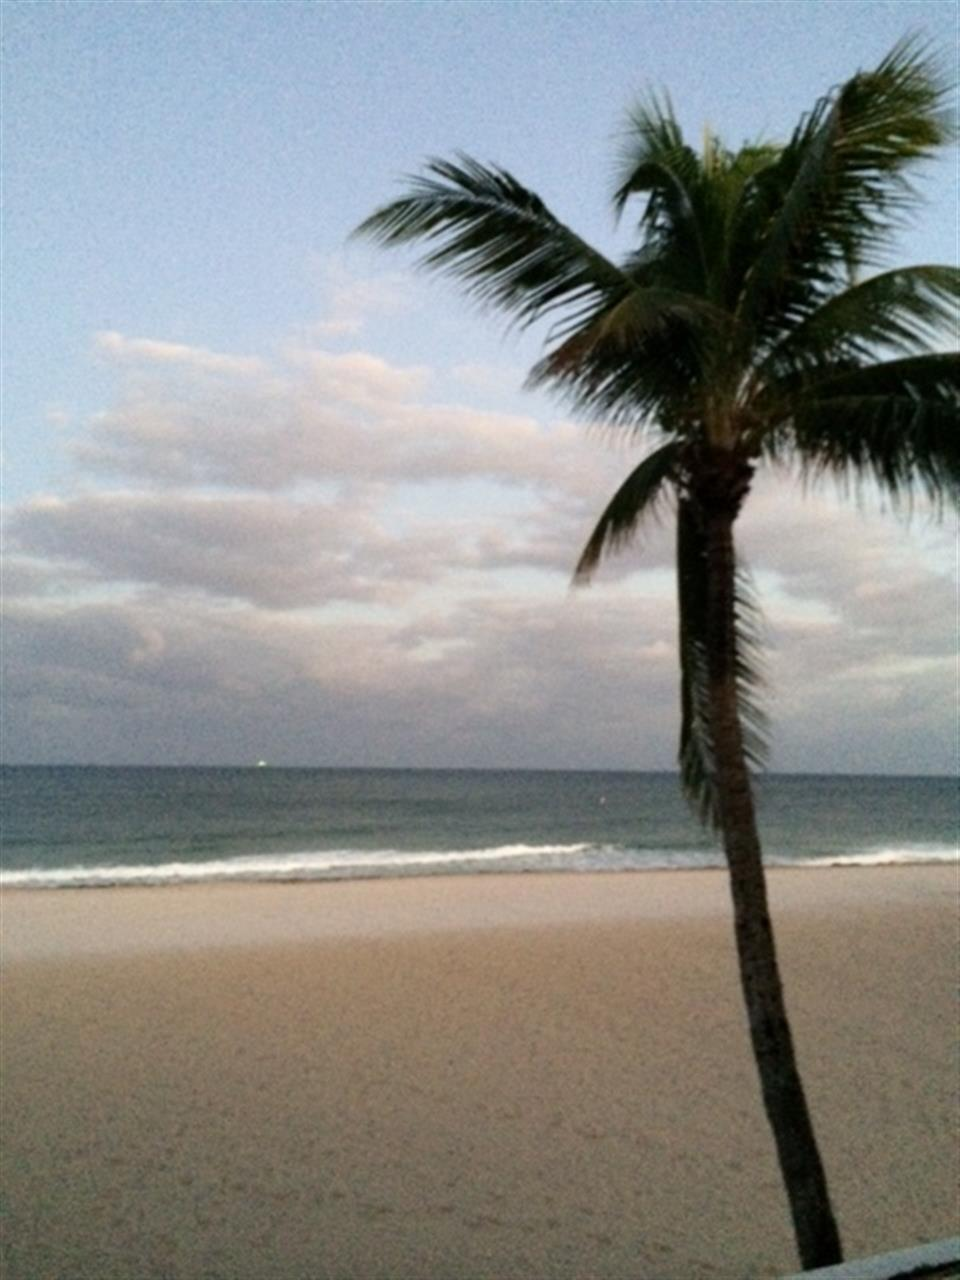 Fort Lauderdale Beach from the Pelican Grand Hotel